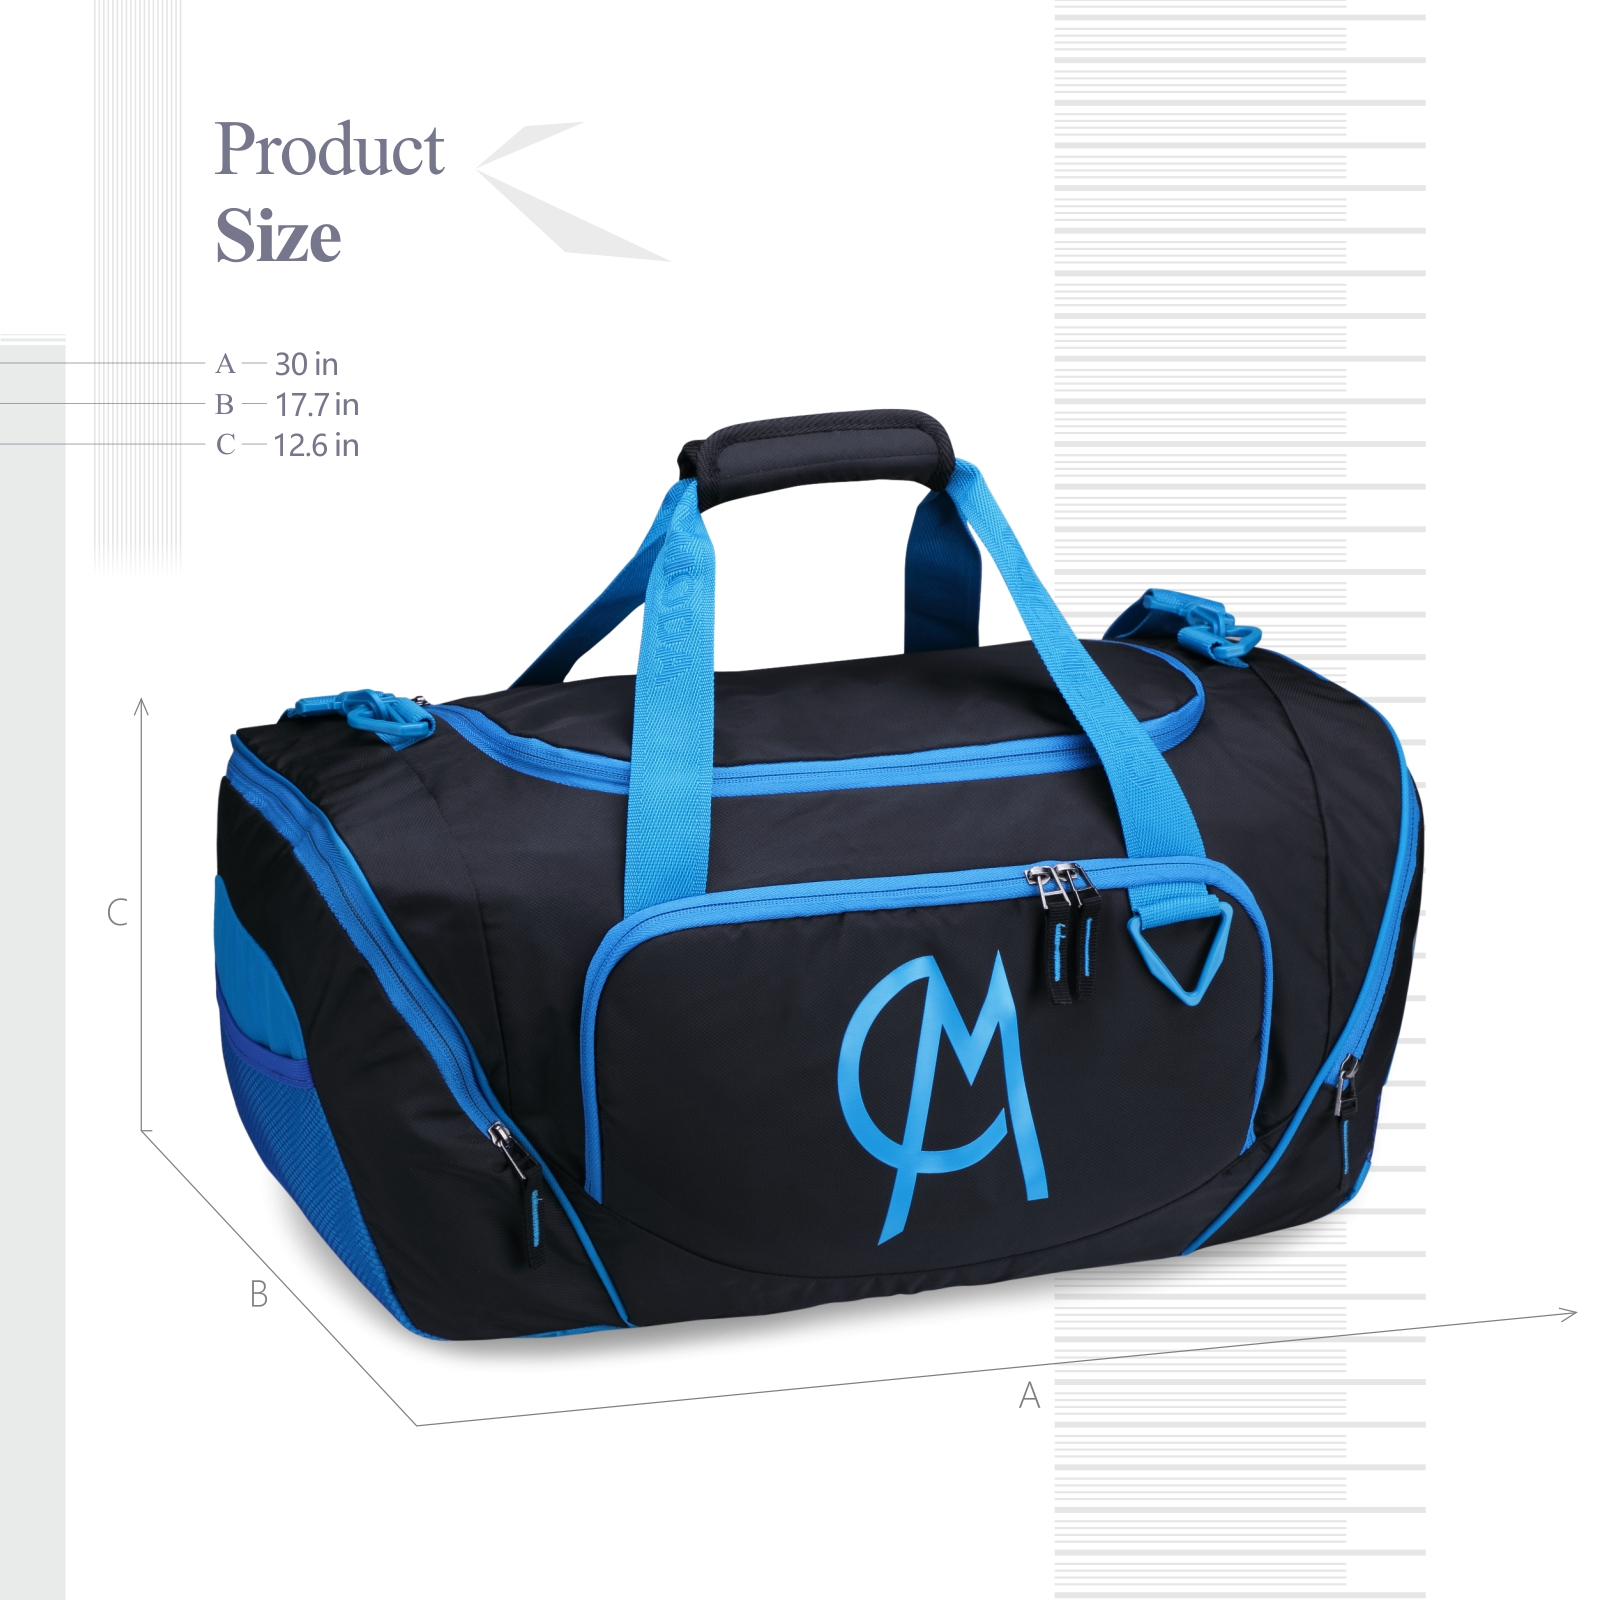 df8d28797c5c Gym Duffel Bag Luggage Bag with Shoe Compartment Large Capacity ...